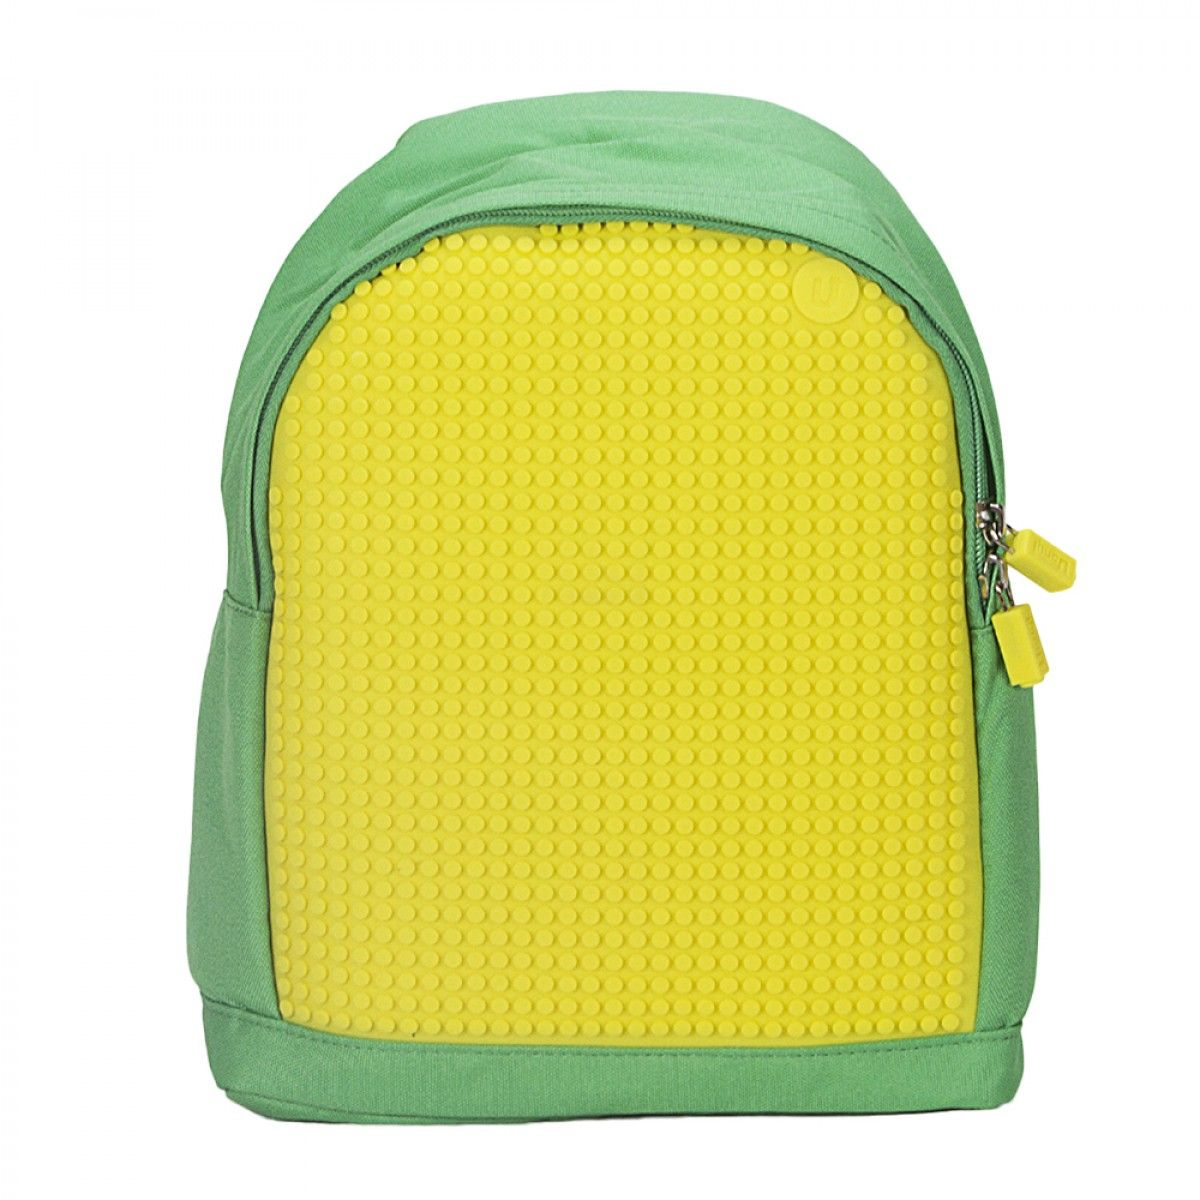 Pixel Kids Backpack  - Green/Yellow